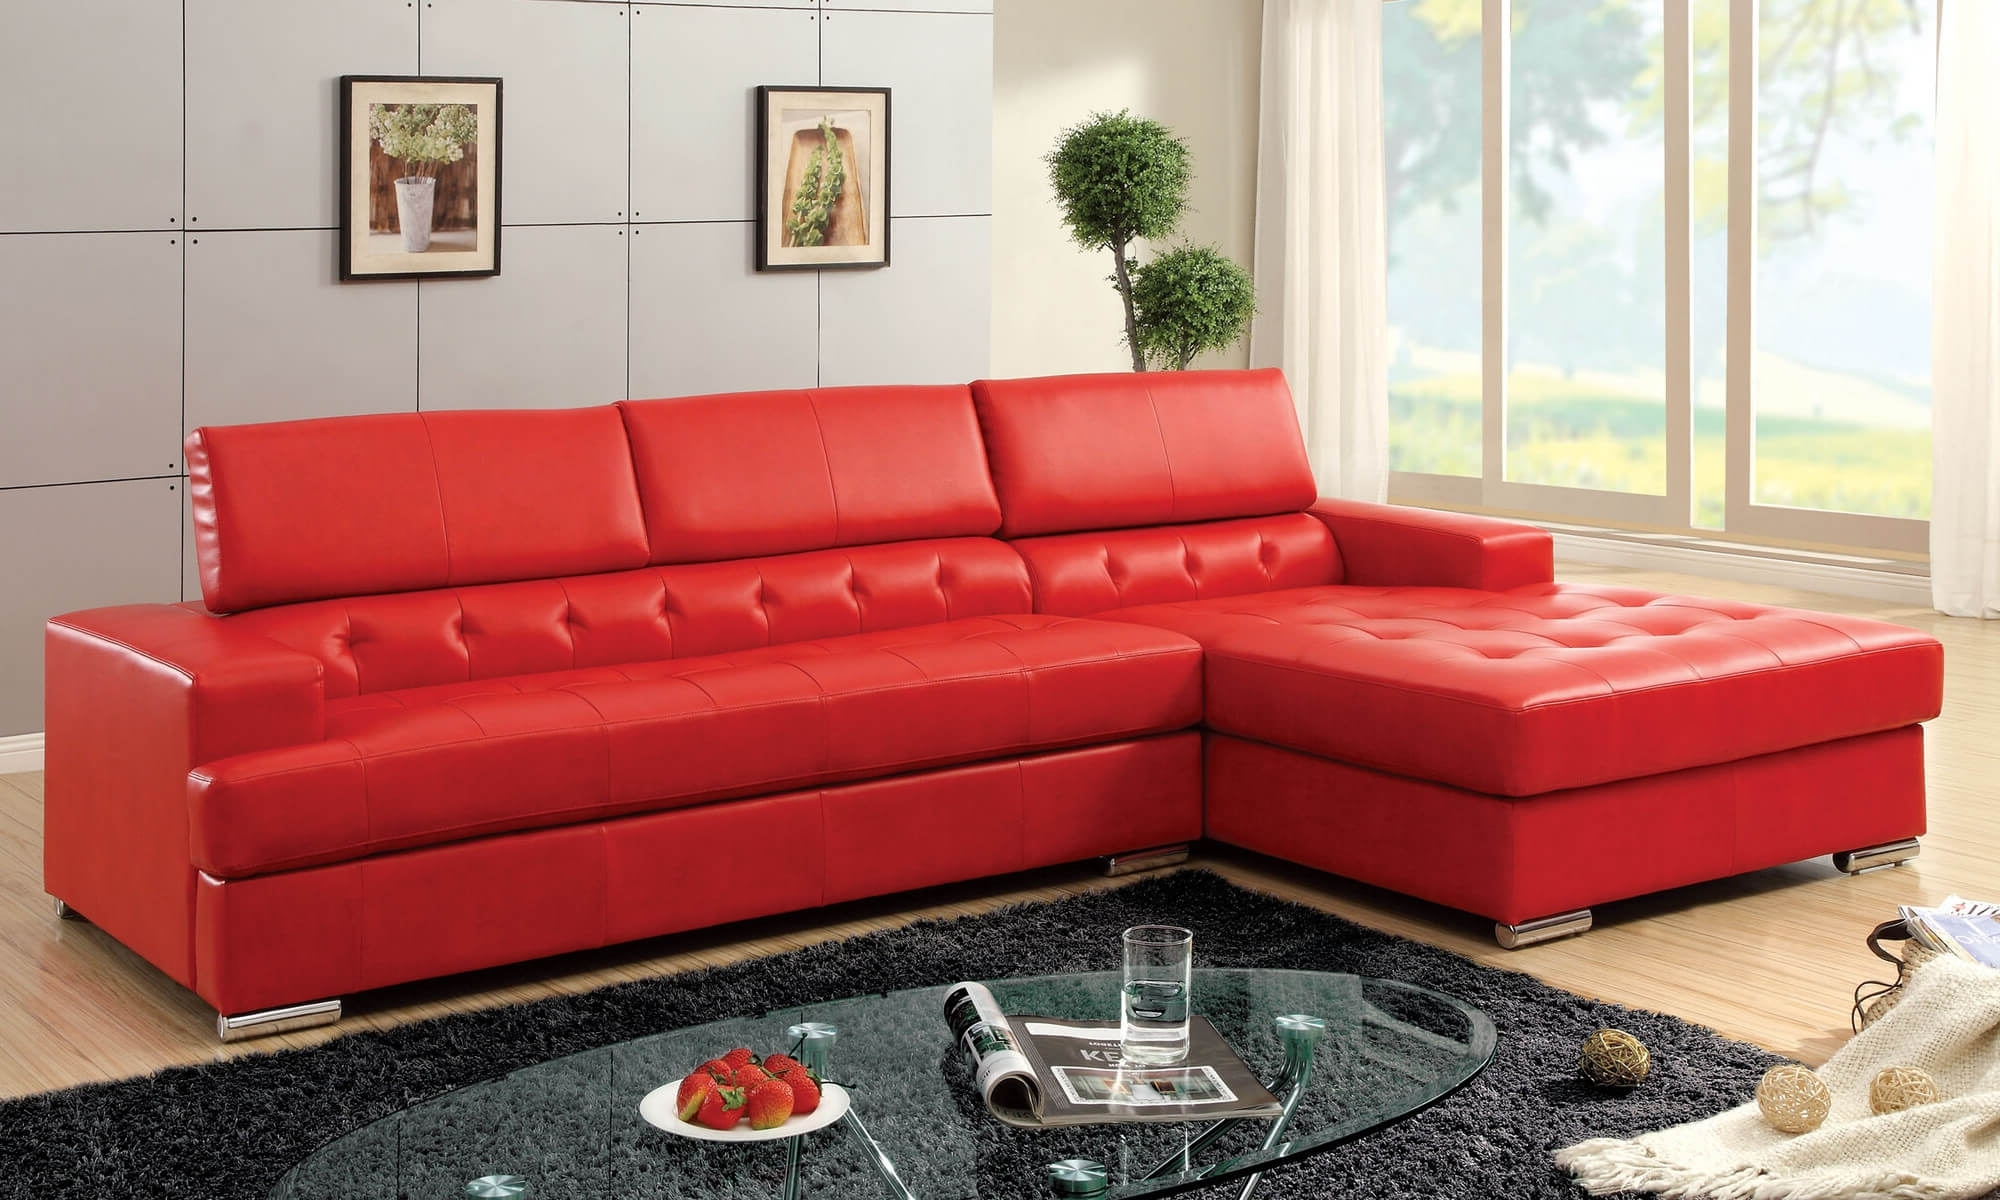 Most Recent 18 Stylish Modern Red Sectional Sofas For Red Leather Couches For Living Room (View 15 of 20)